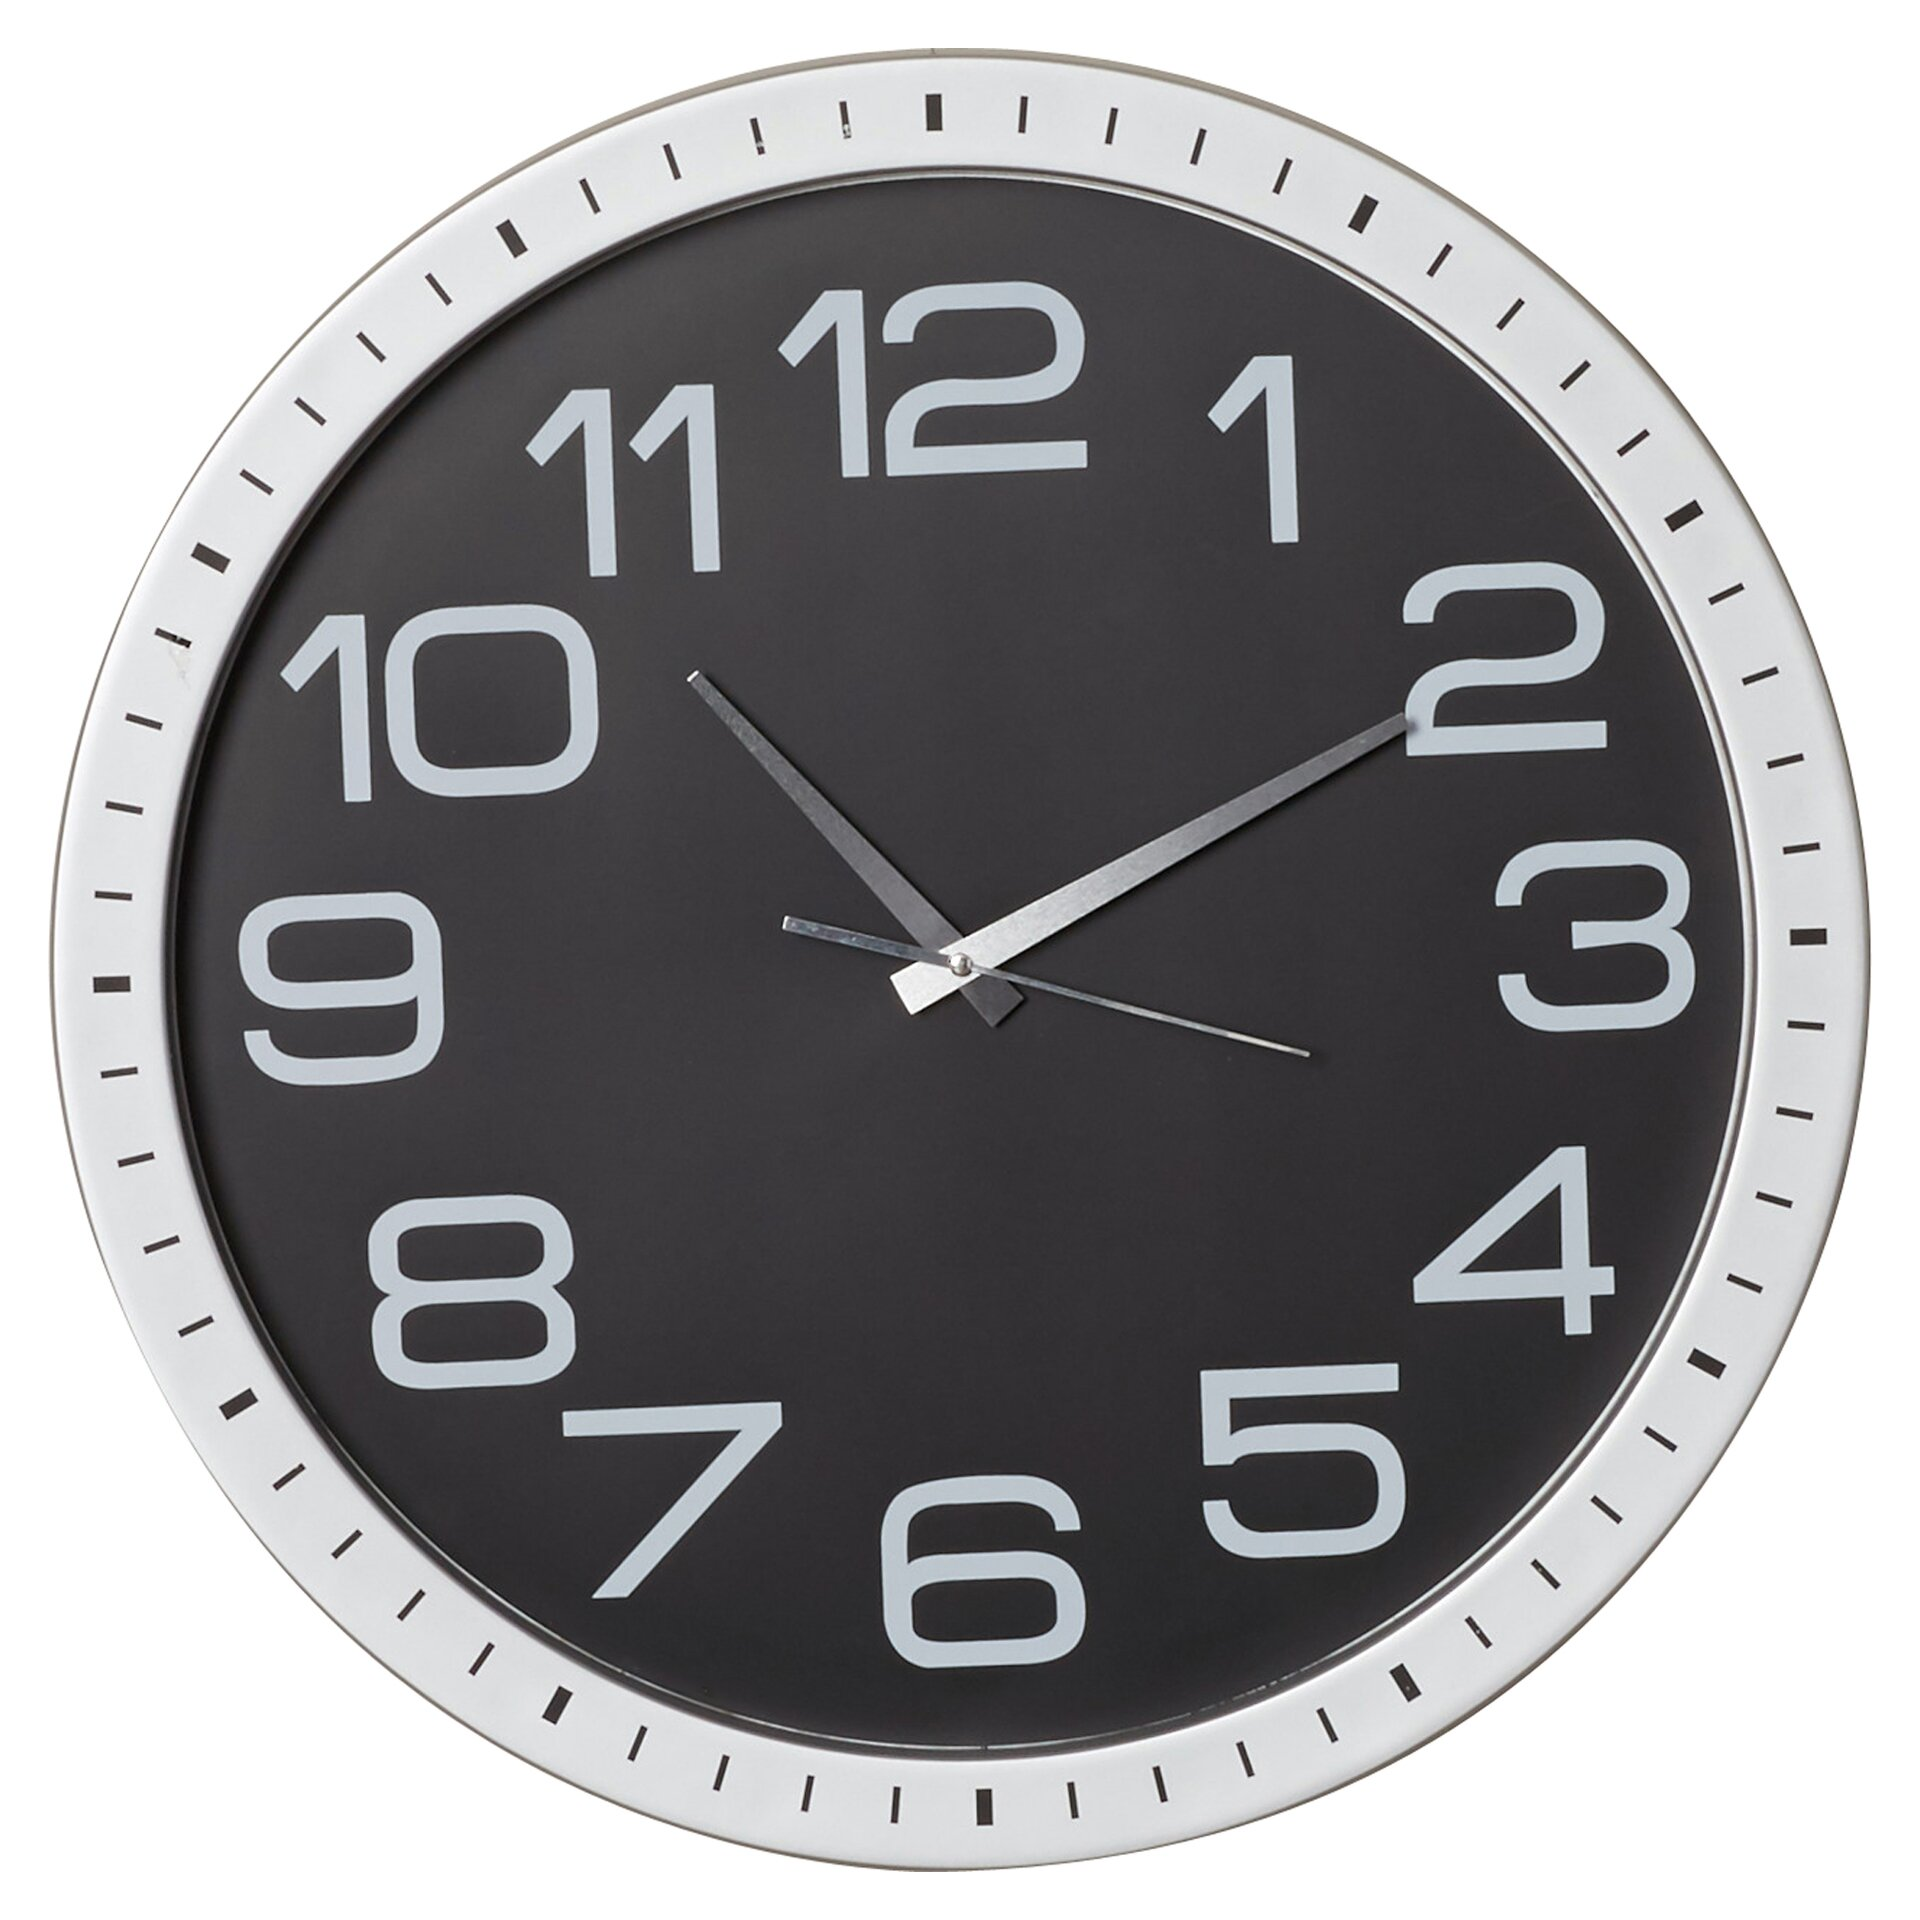 Mercury Row Ceto 22 Large Numbers Wall Clock Reviews